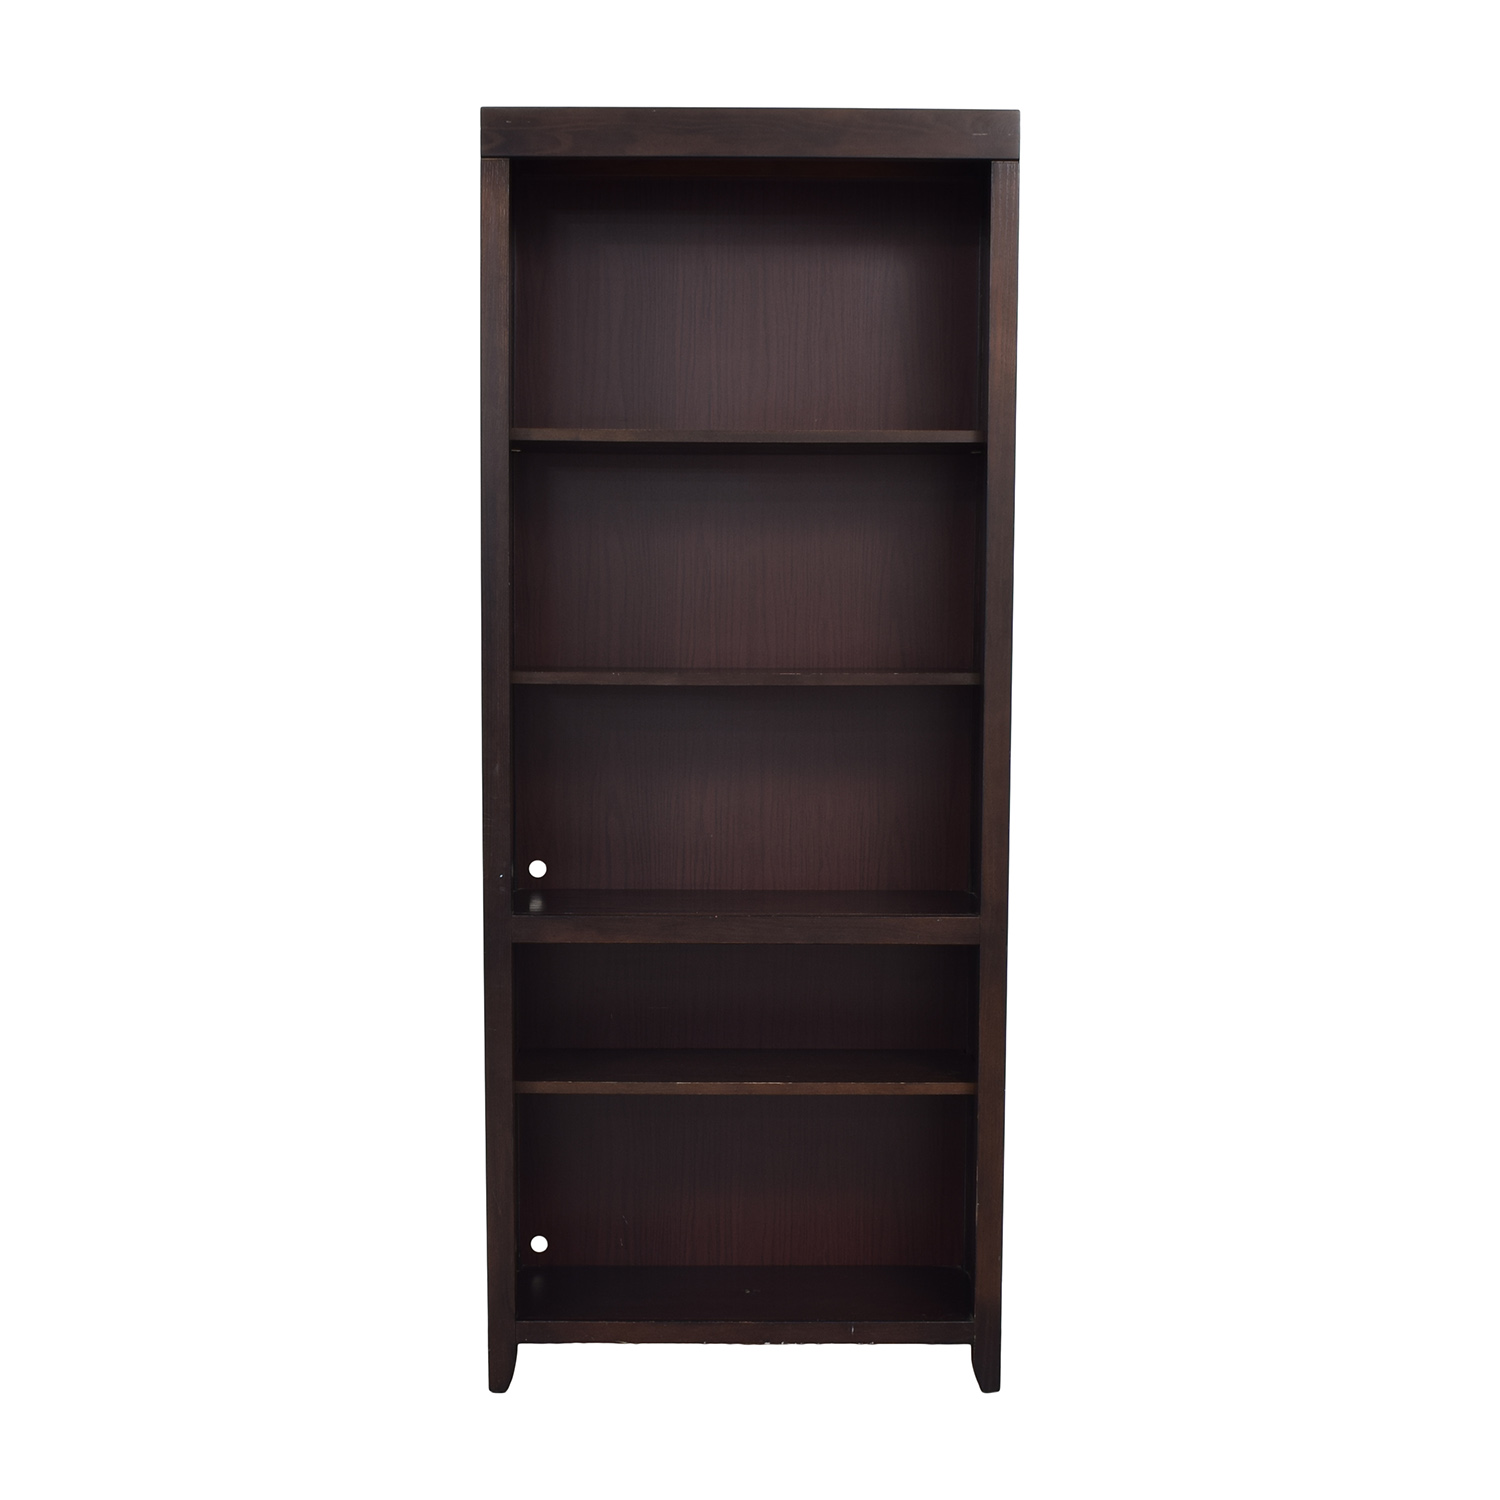 Stanley Furniture Stanley Furniture Bookshelf dark brown